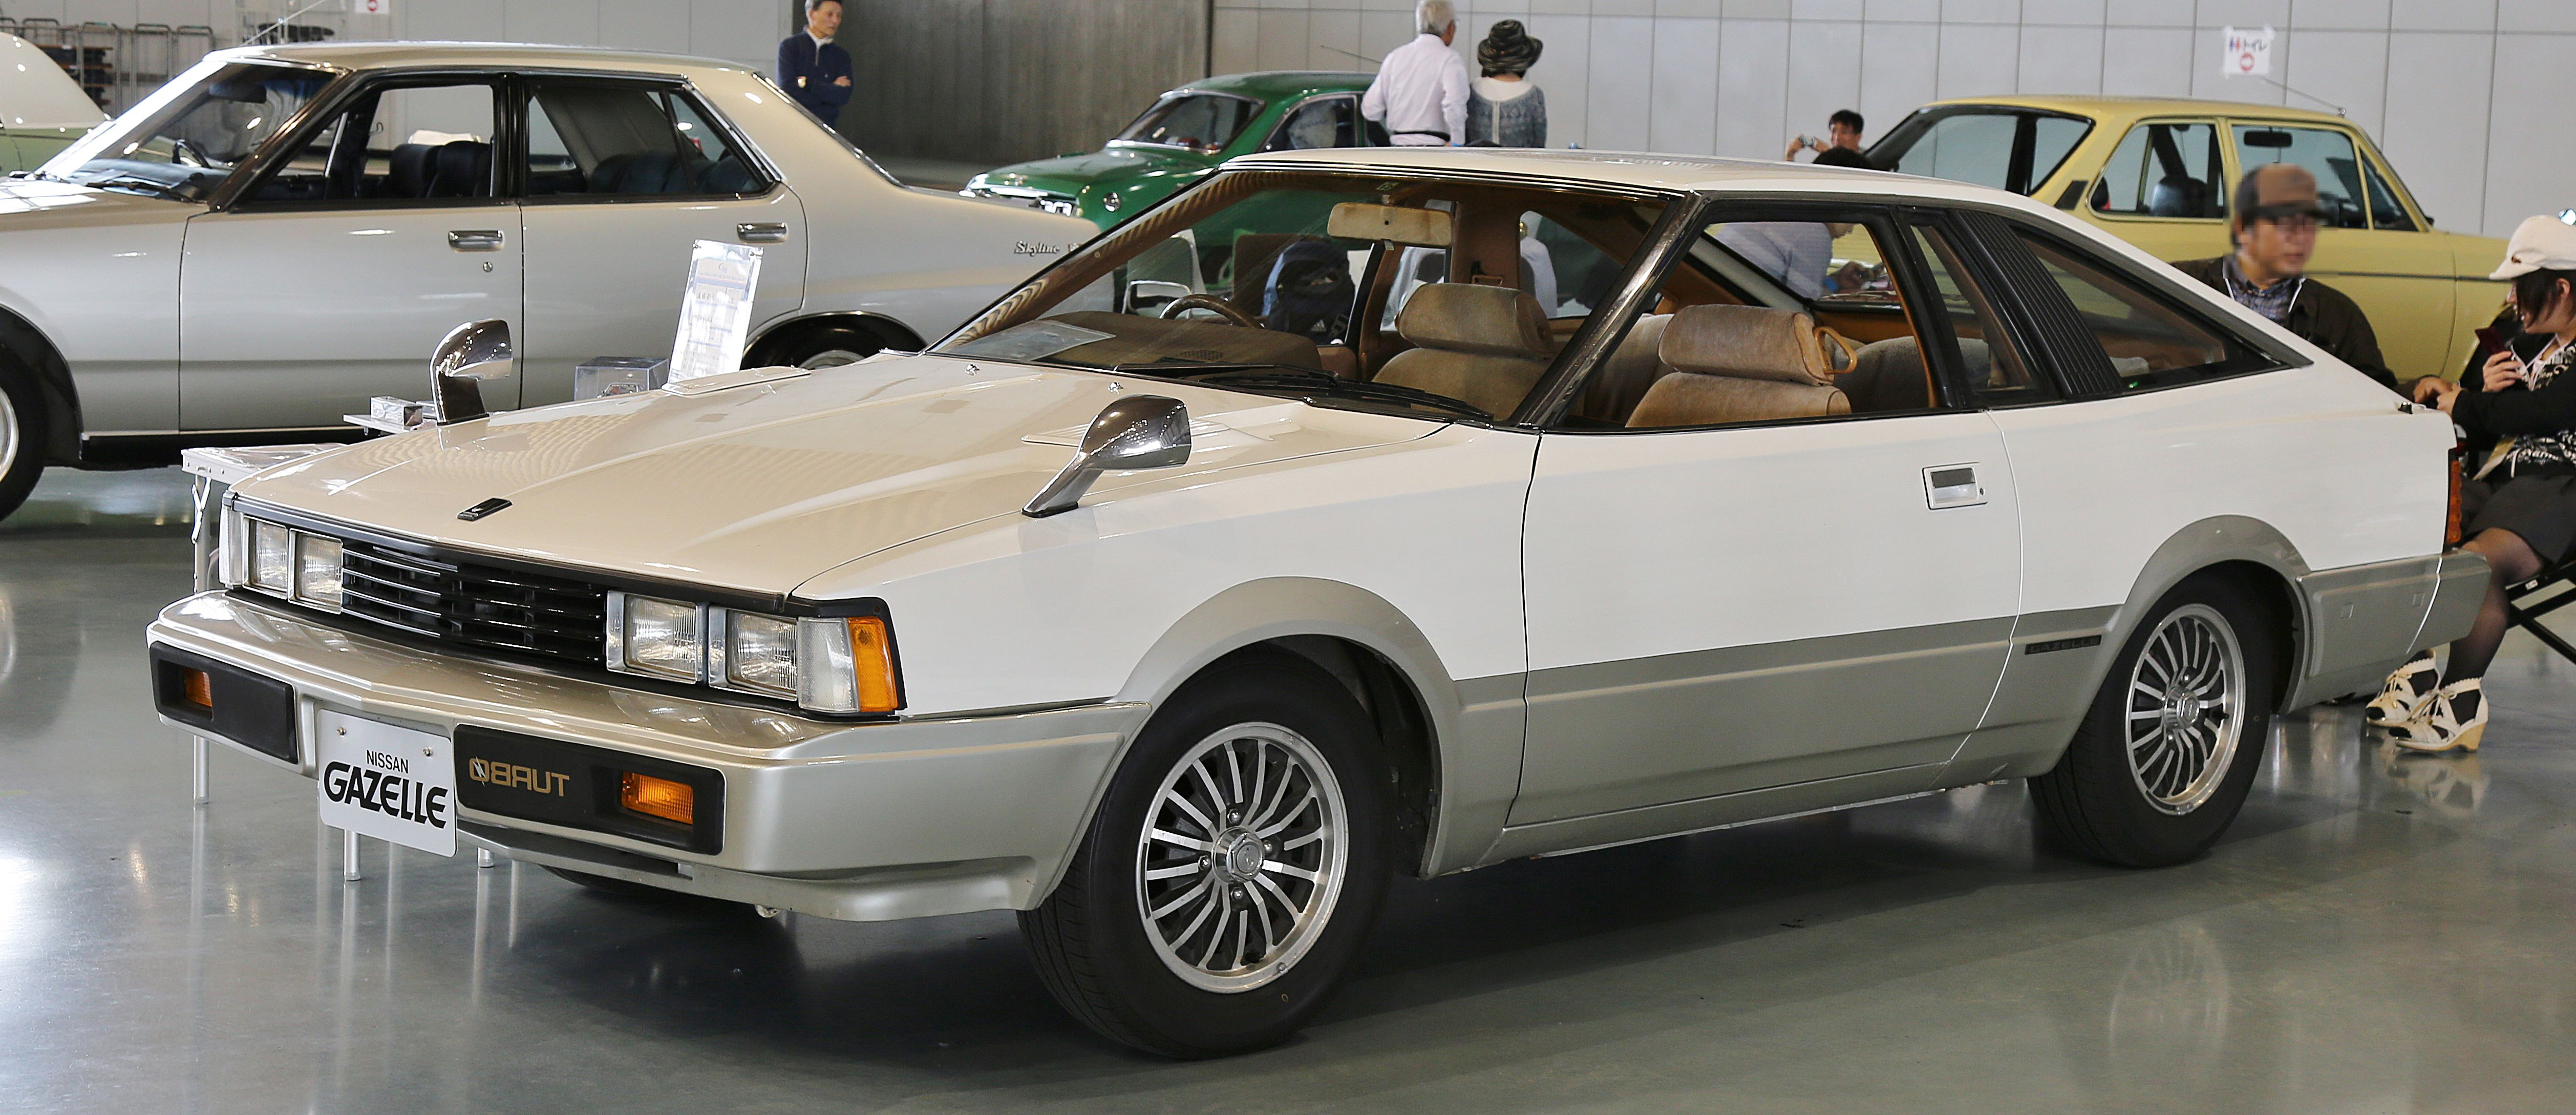 Who Is Nissan Made By Upcomingcarshq Com